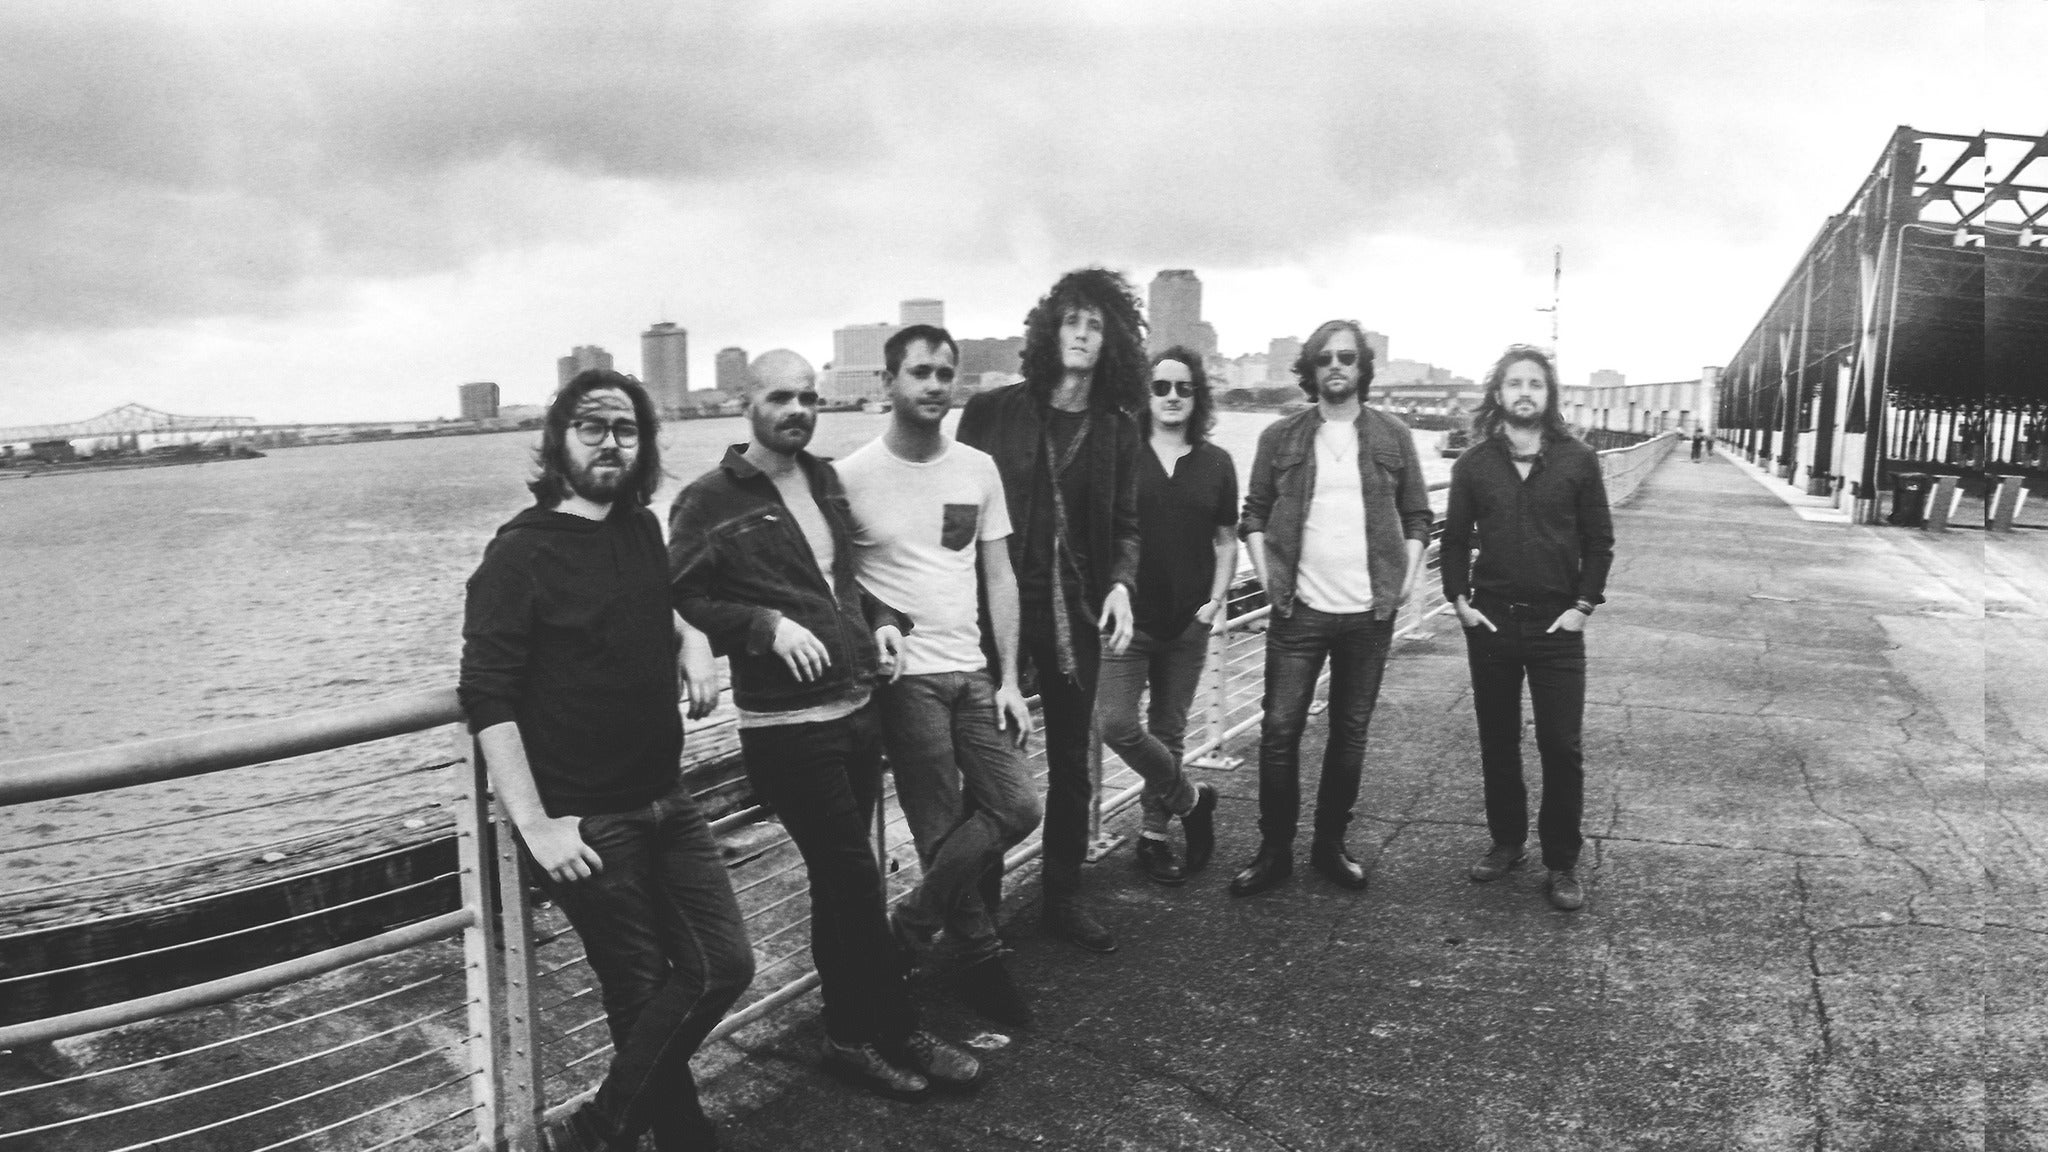 105.7 The Point Welcomes: The Revivalists at The Pageant